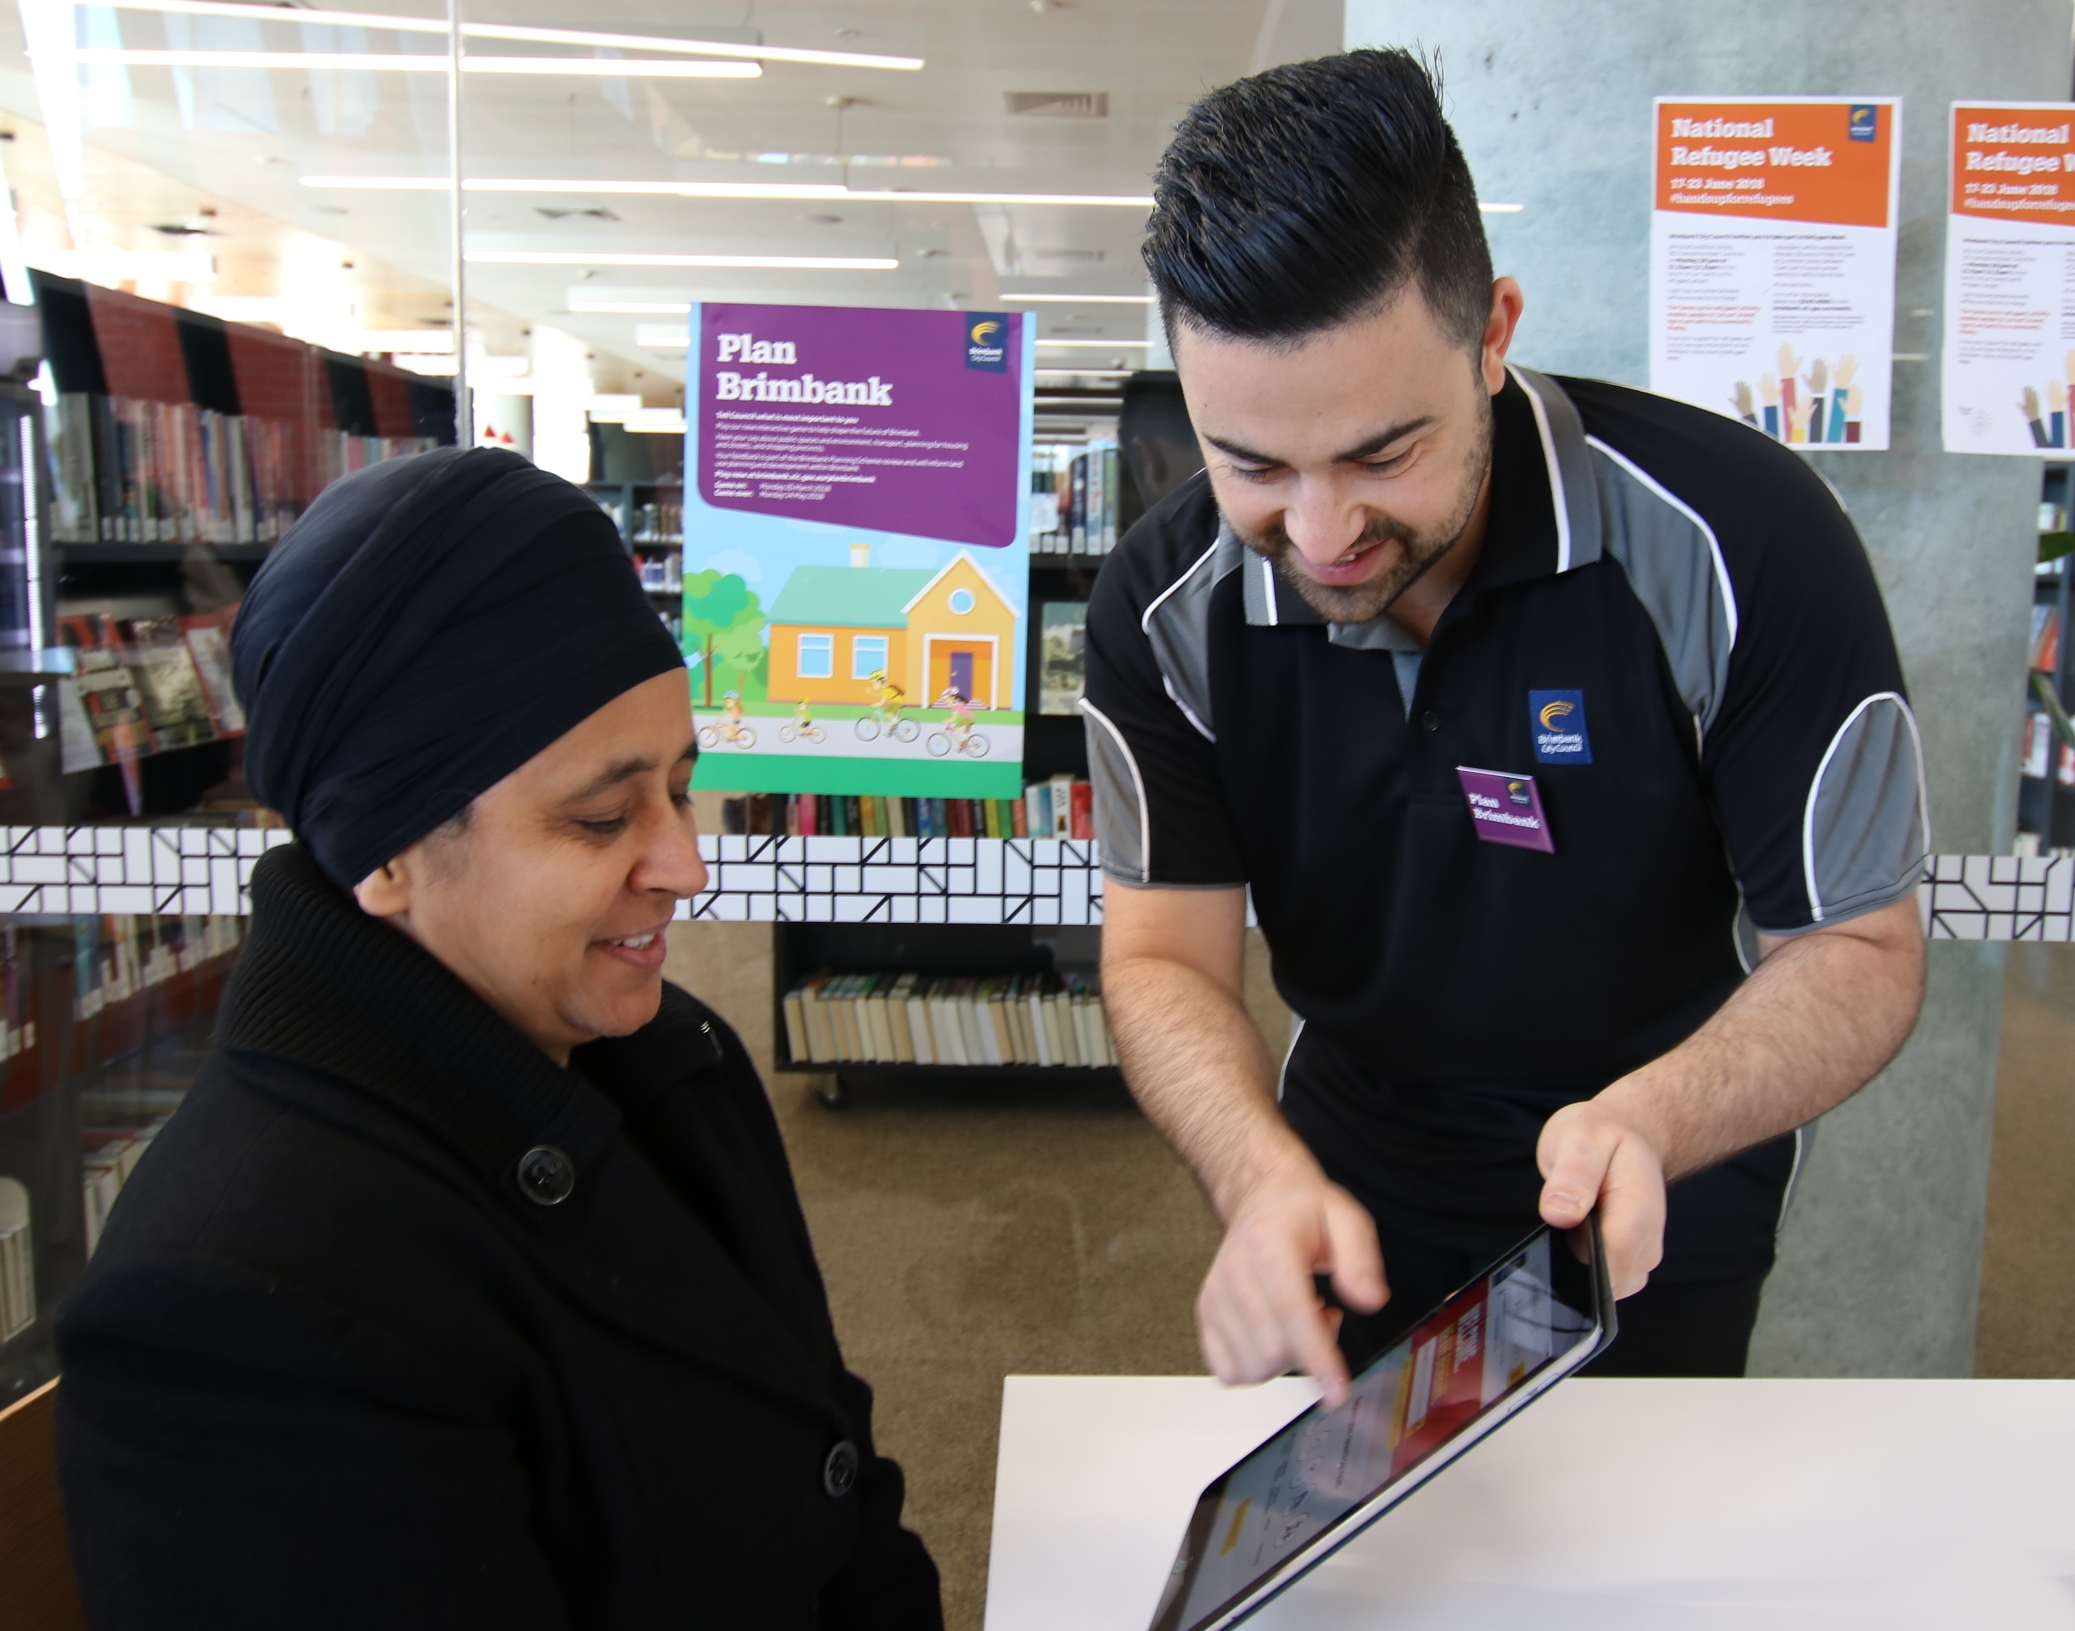 Brimbank council officer assisting a seated lady to play the game on a tablet